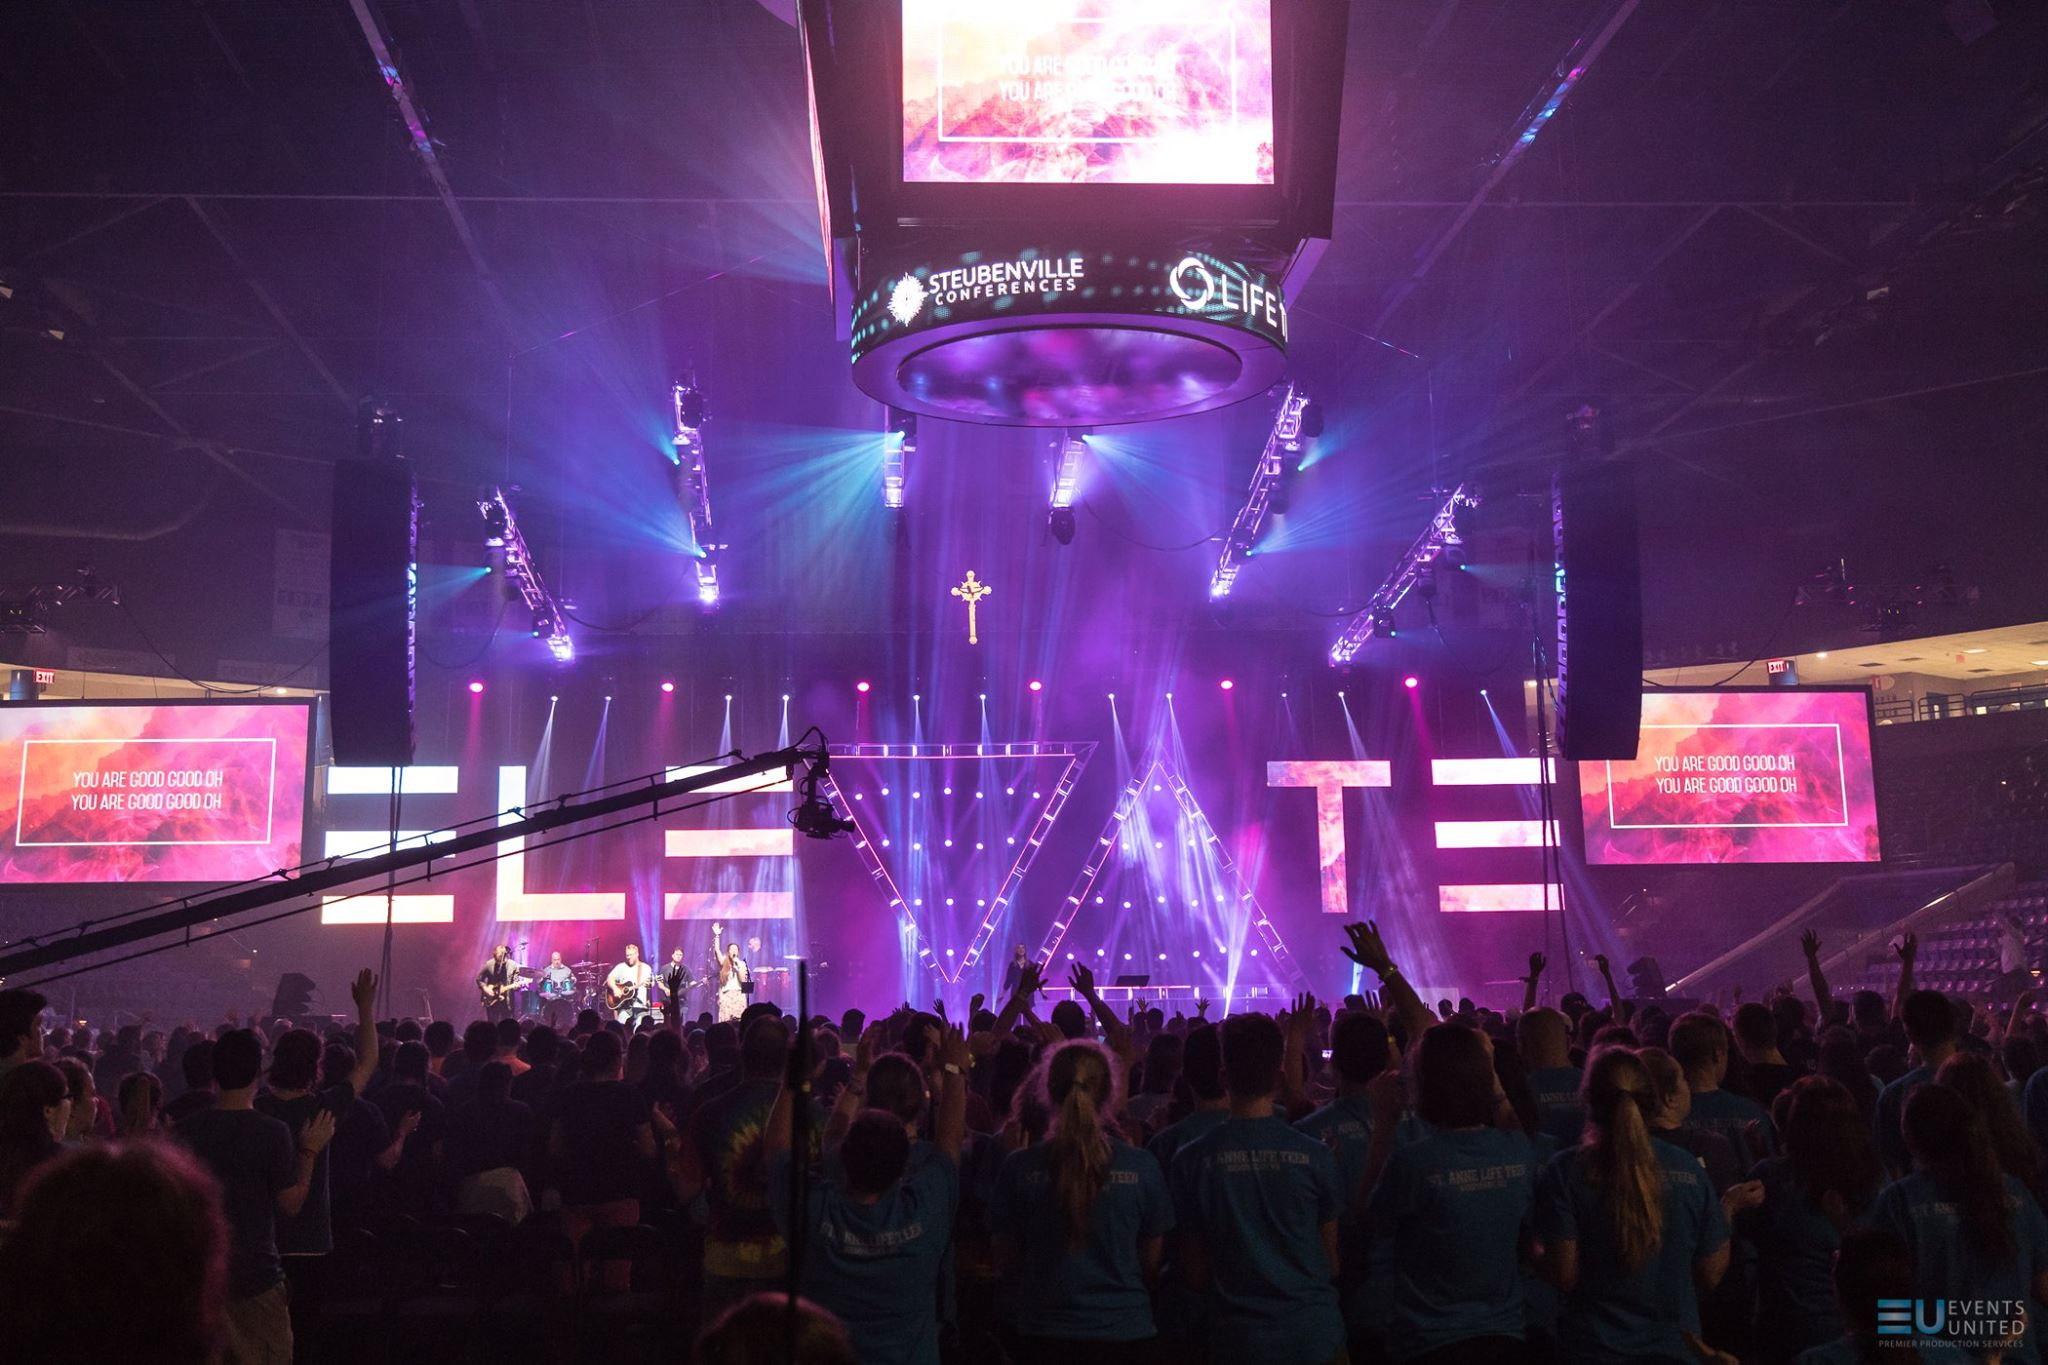 Events United Creates 80' Video Wall Logo For Steubenville